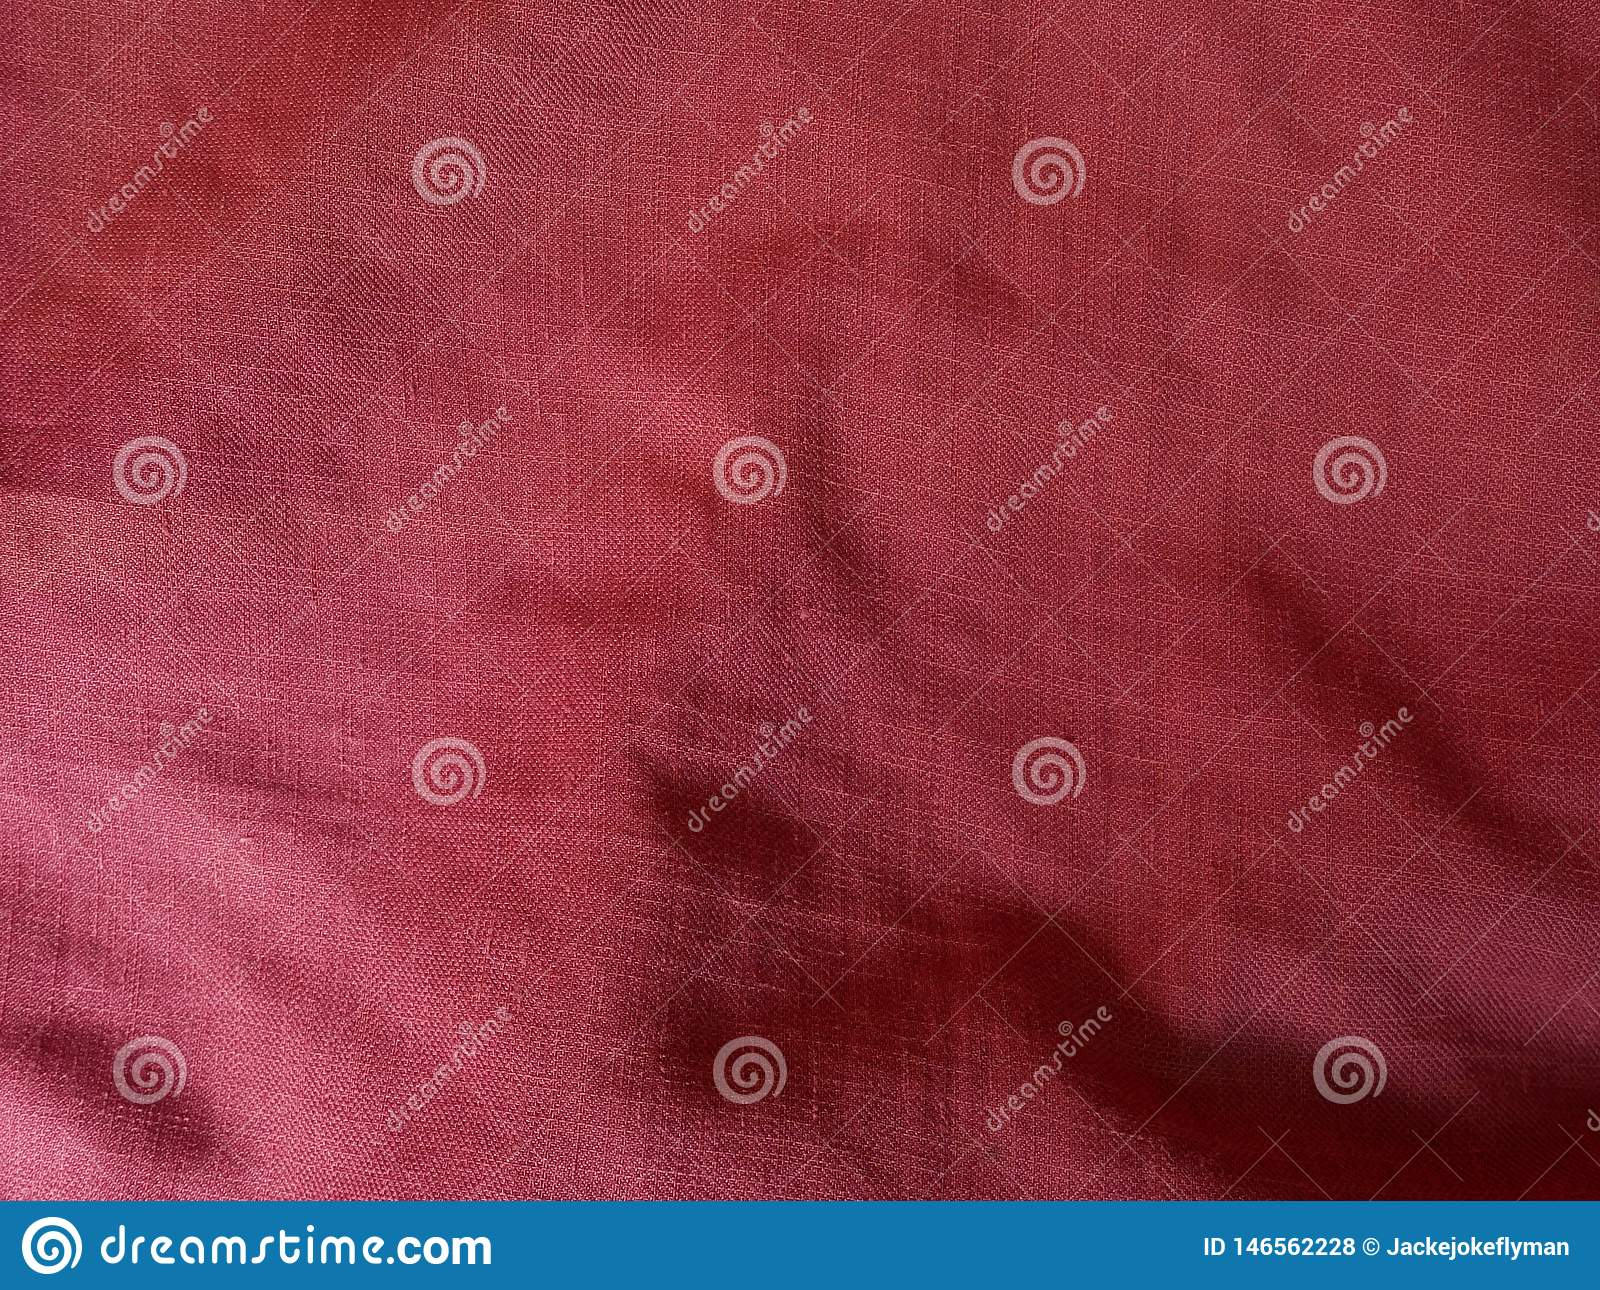 Red Cotton Fabric Texture Pastel Background Of Red Silk Texture Stock Photo Image Of Pastel Beauty 146562228